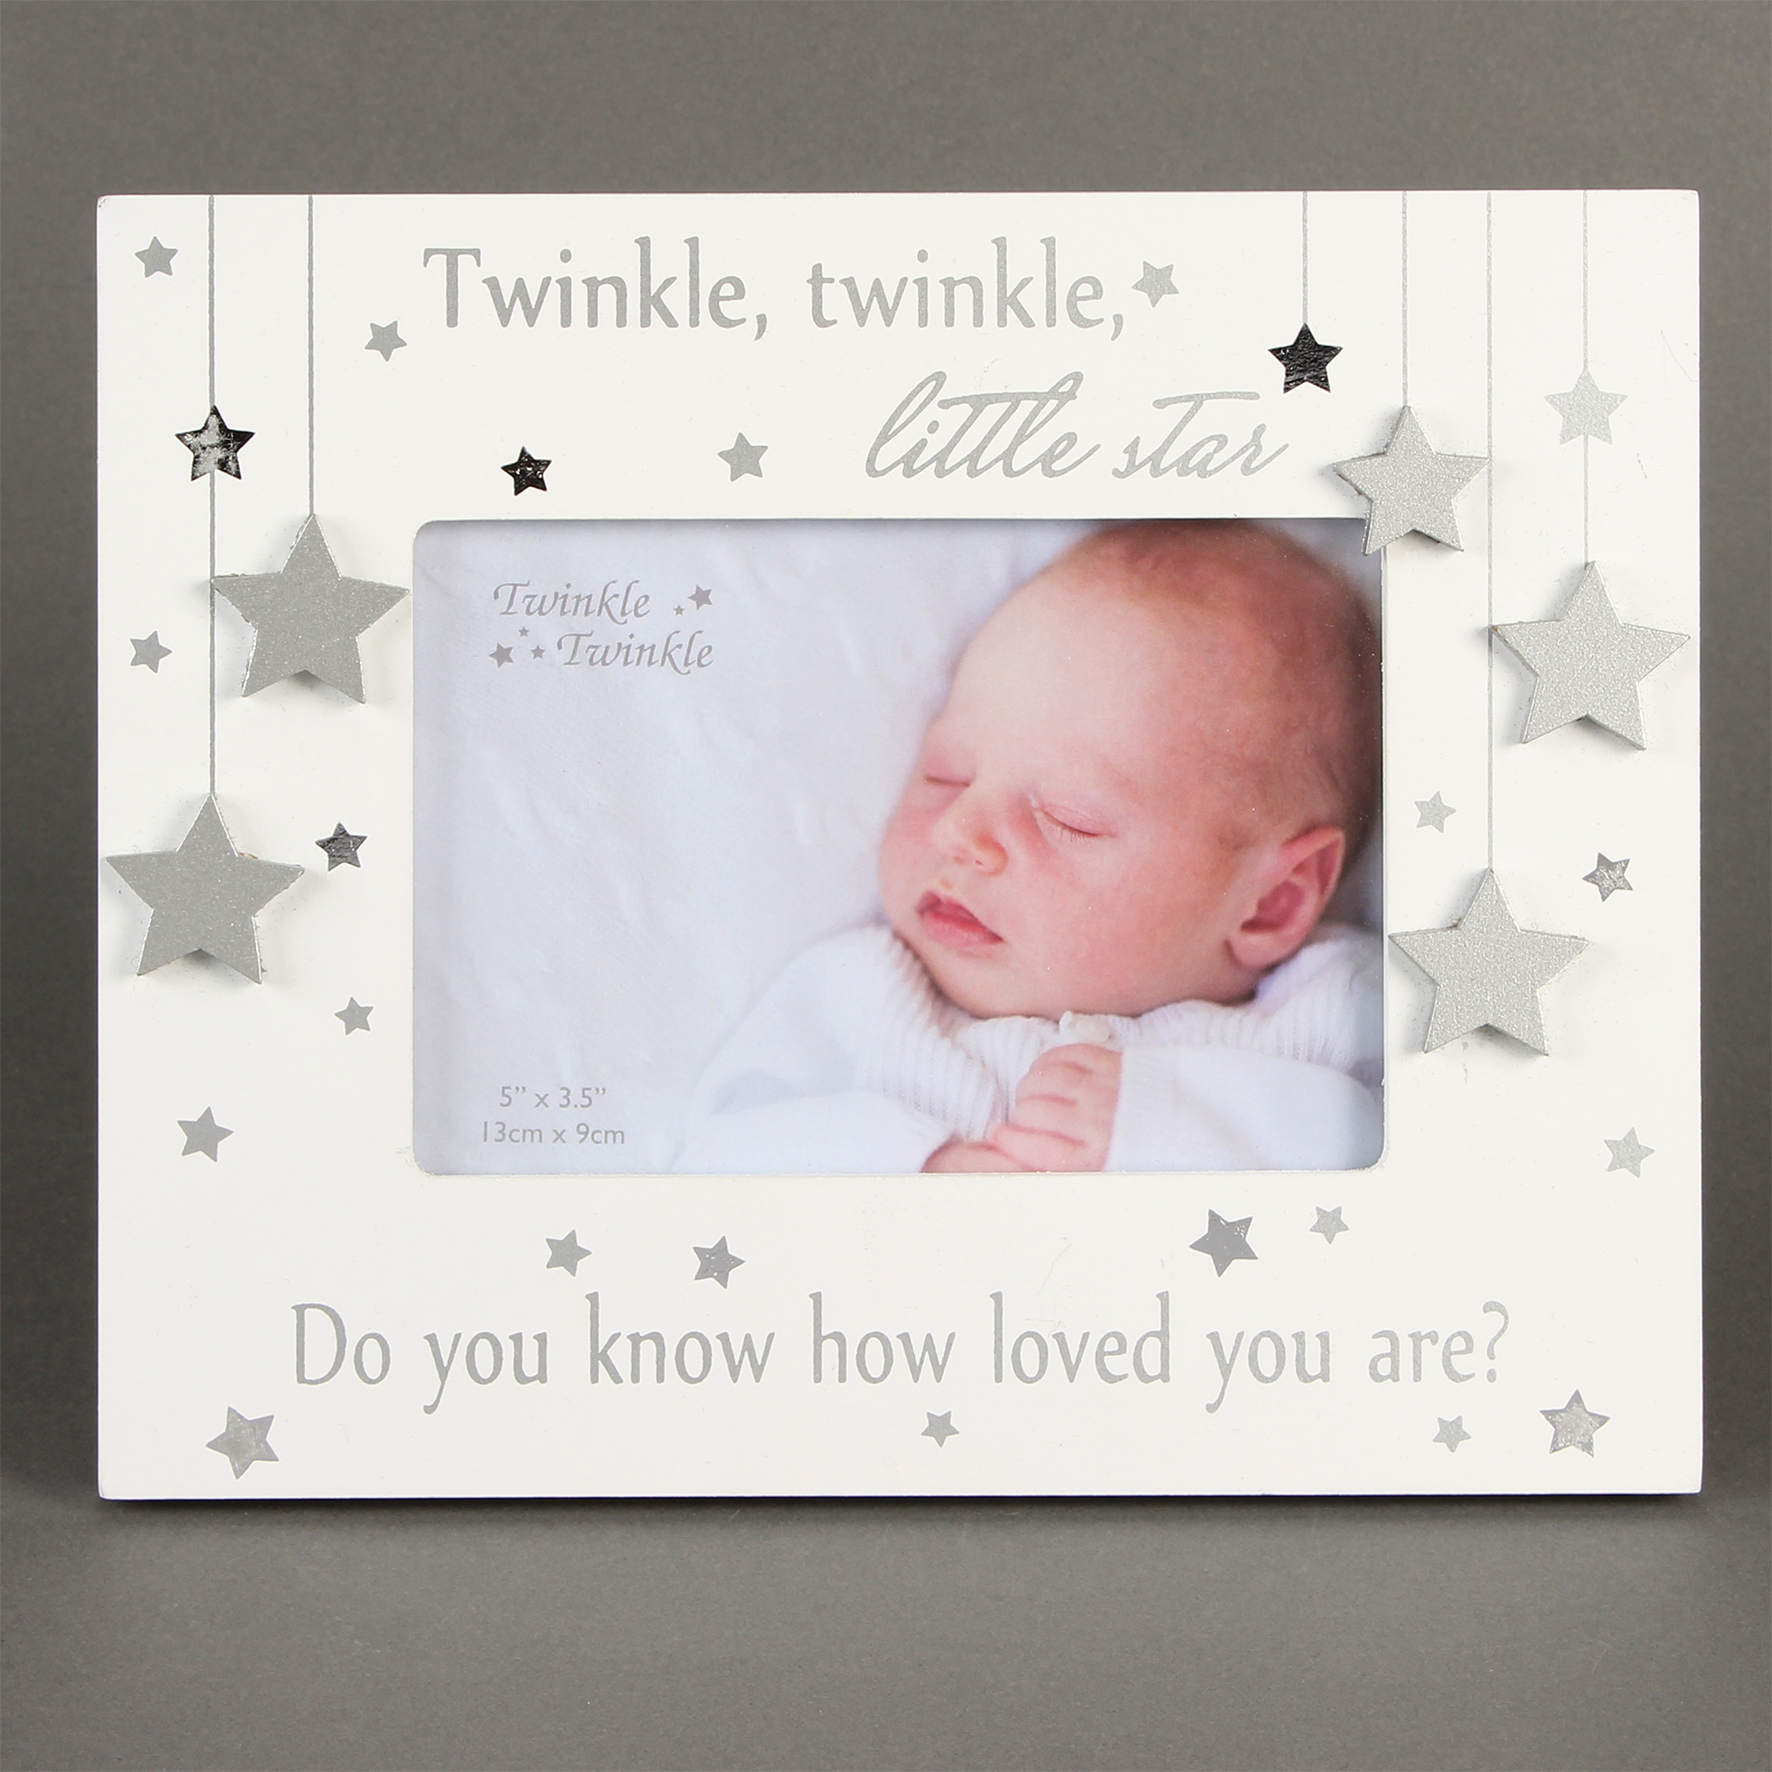 Twinkle Twinkle Little Star White Freestanding Photo Frame Gifts